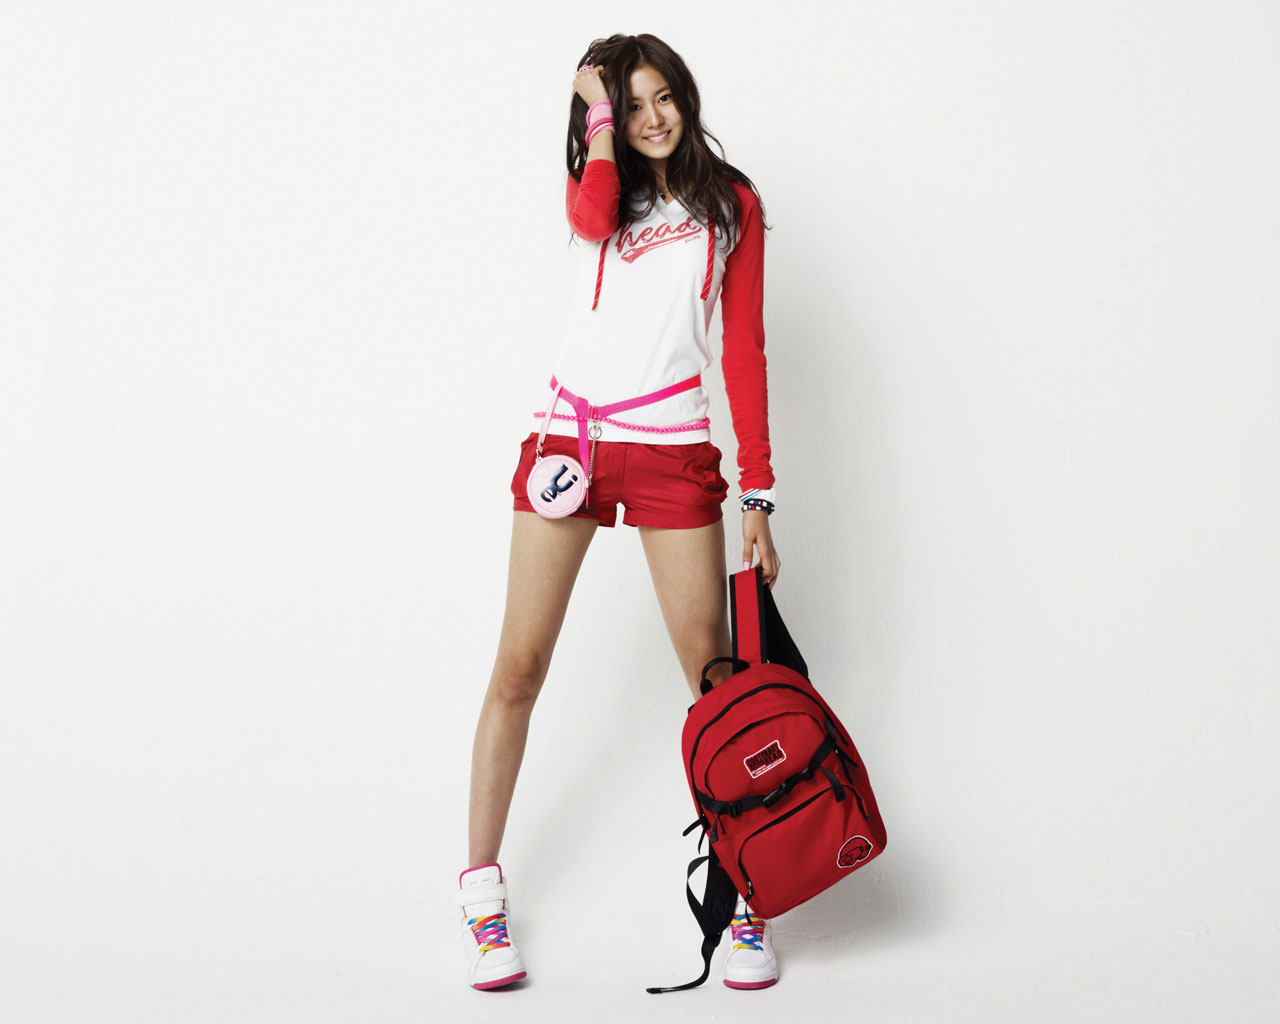 after school sports Sometimes after school sports can improve student's grades because they work harder to stay playing the sport in other cases the kids don't care and they focus only on the athletic side of things and don't care about athletics.